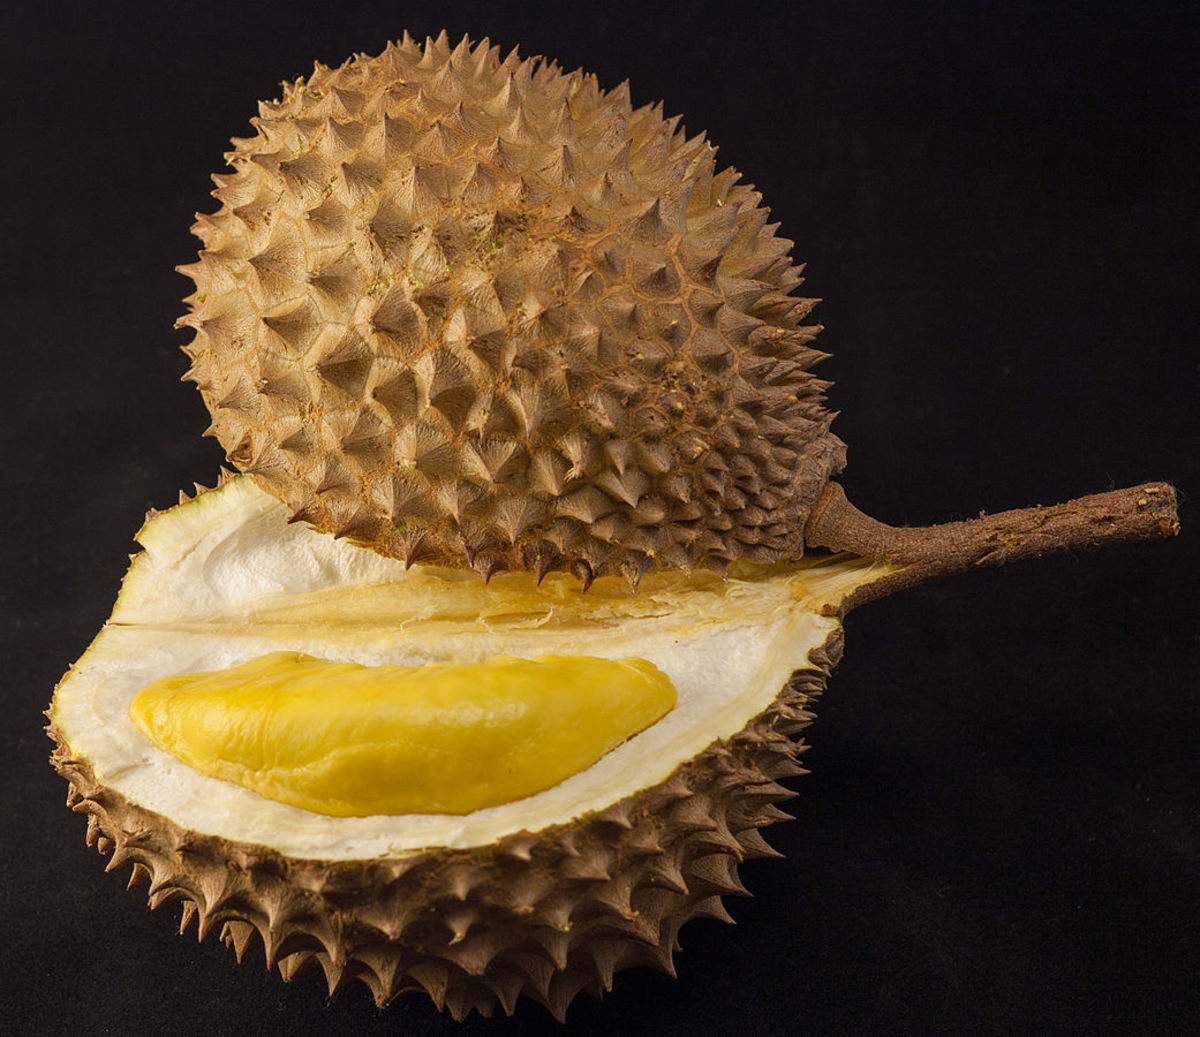 Durian, the king of all fruits